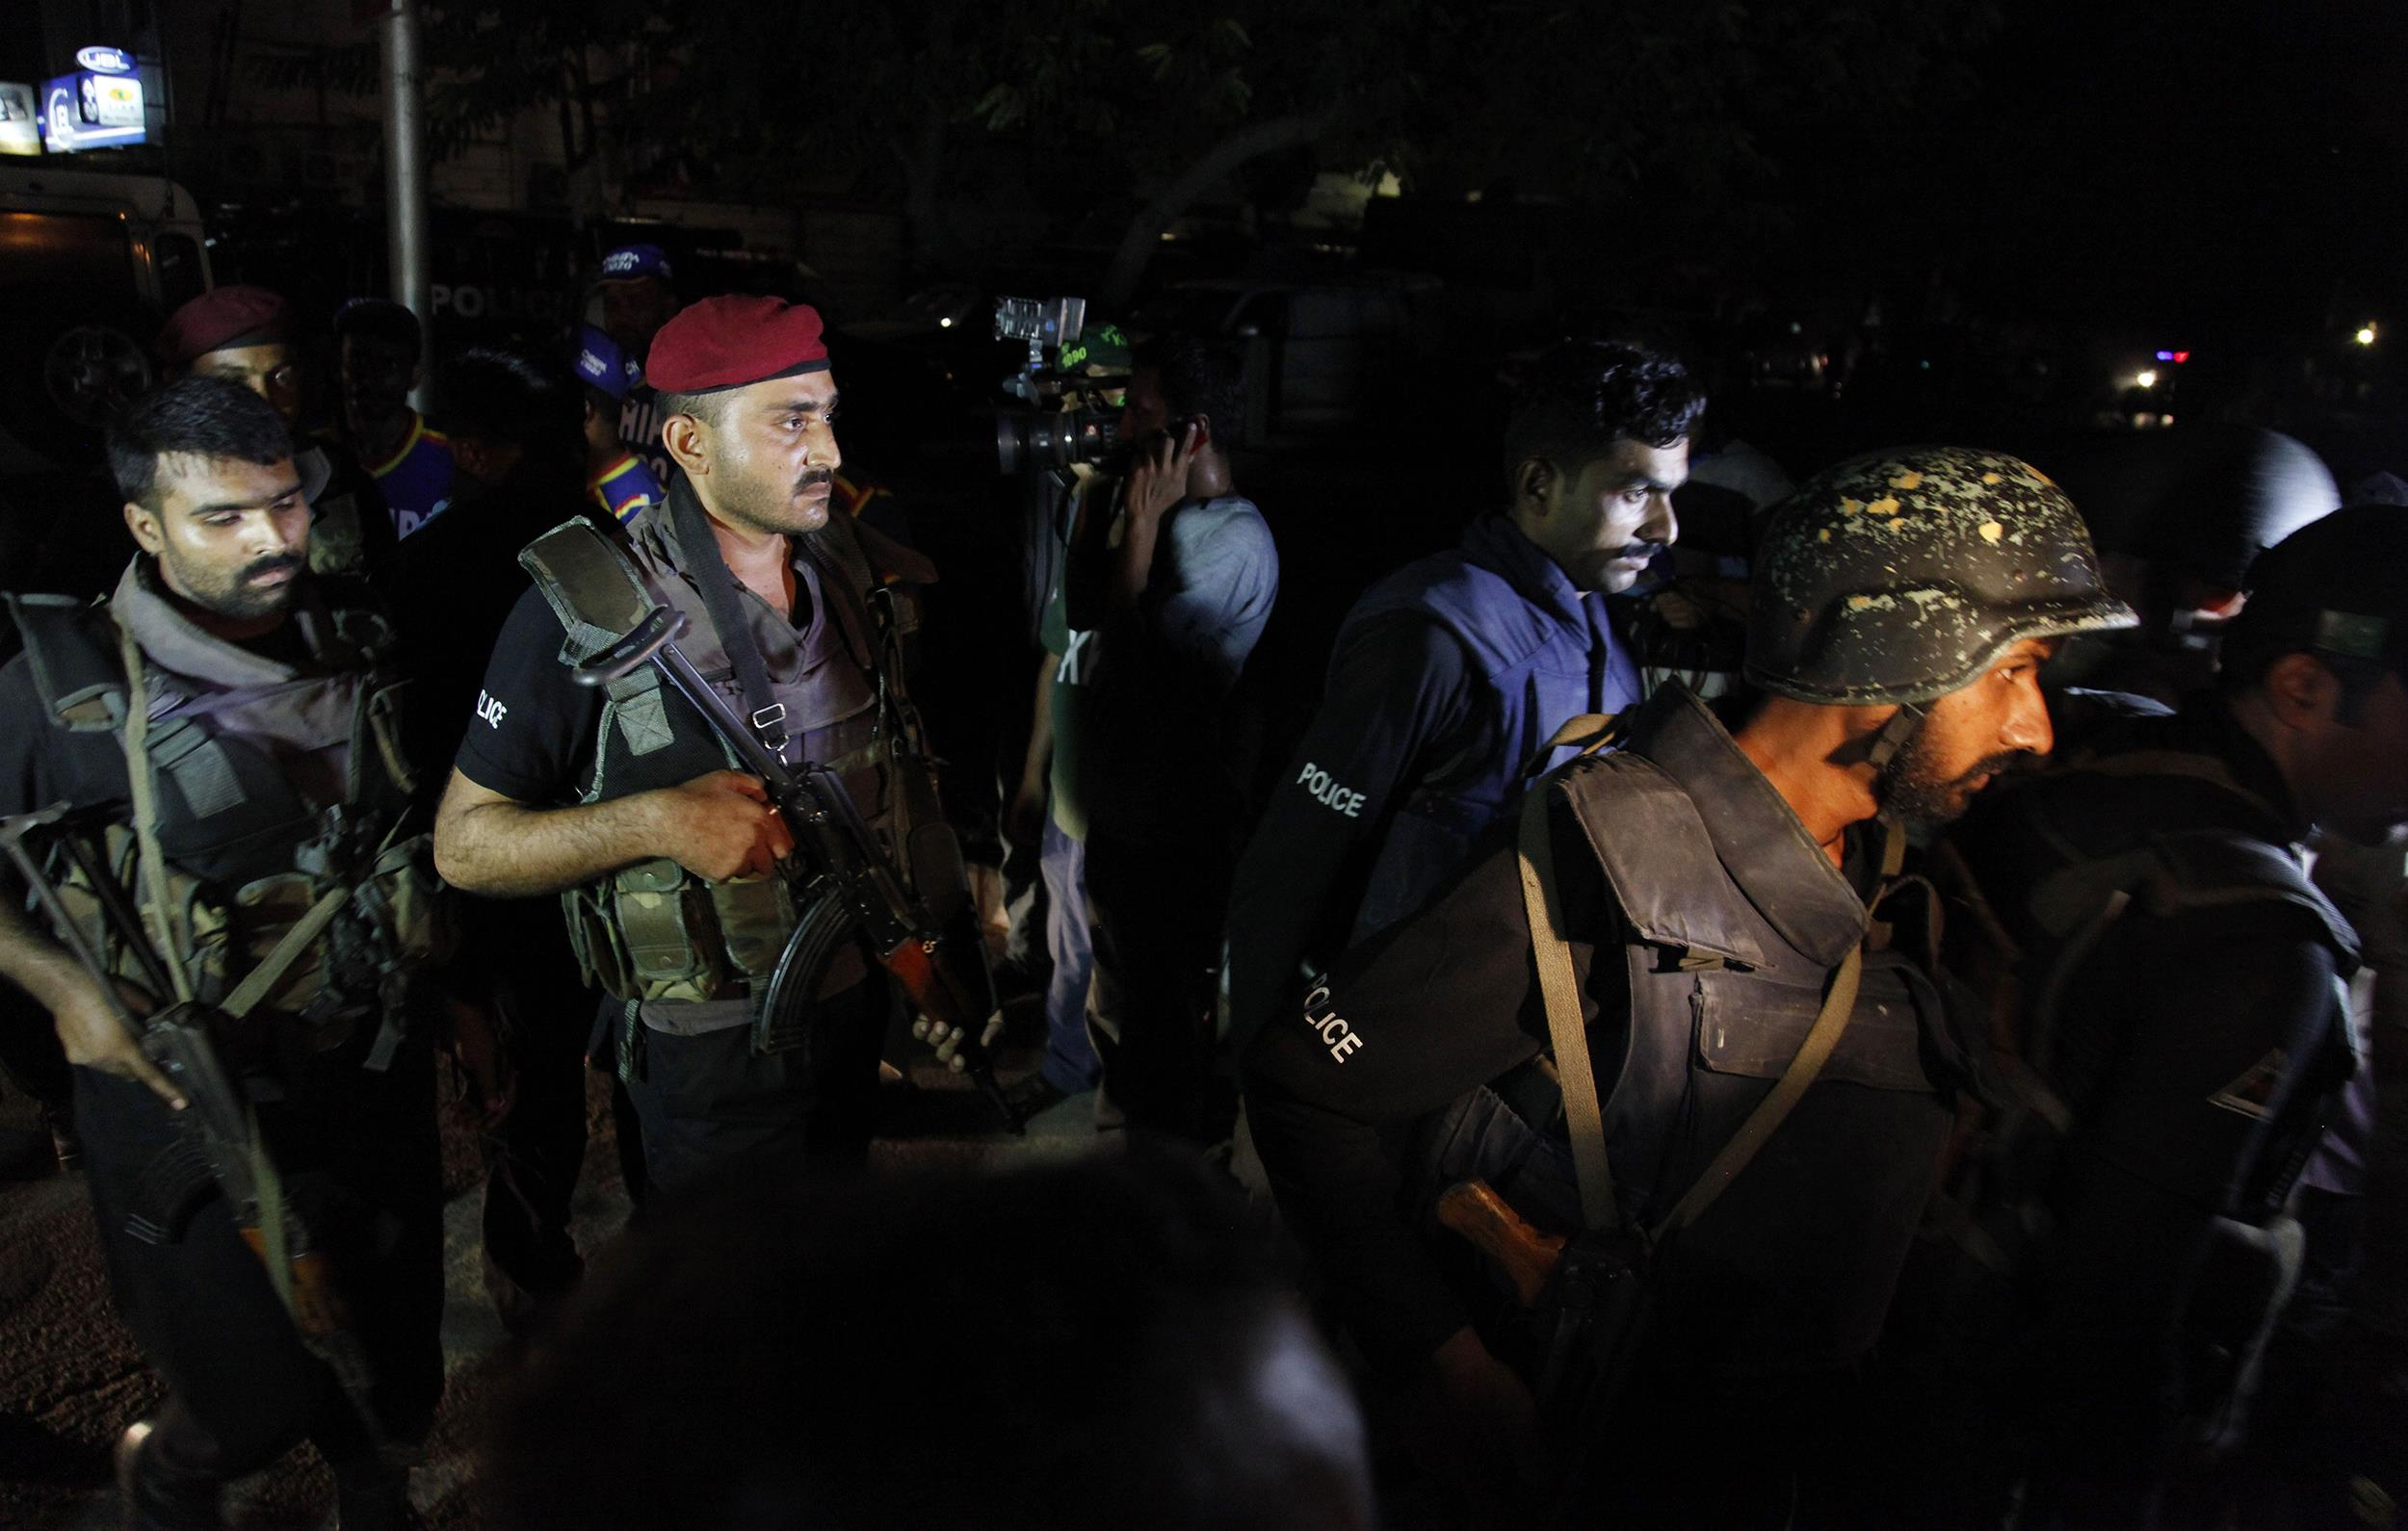 Image: Pakistani commandos get ready to enter Karachi airport terminal following attacks by unknown gunmen on Sunday night